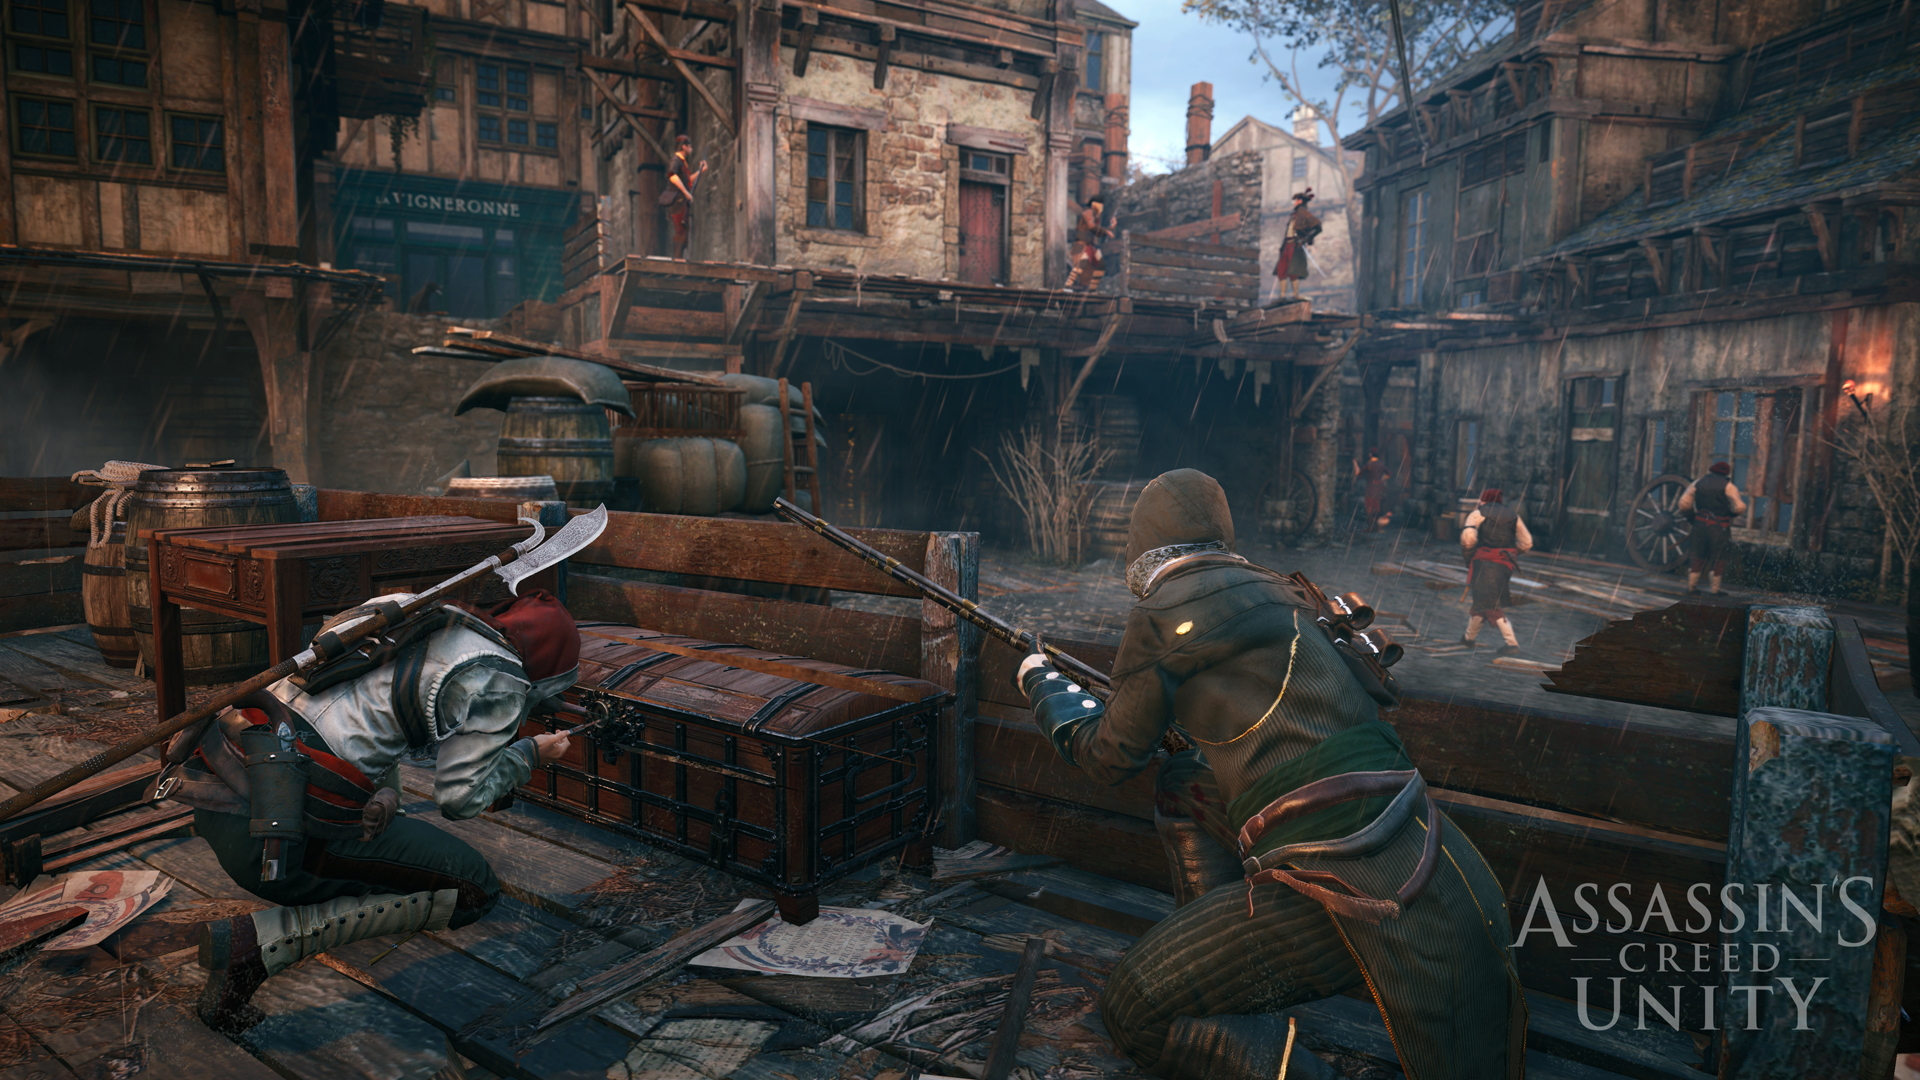 assassins_creed_unity_coop_heist